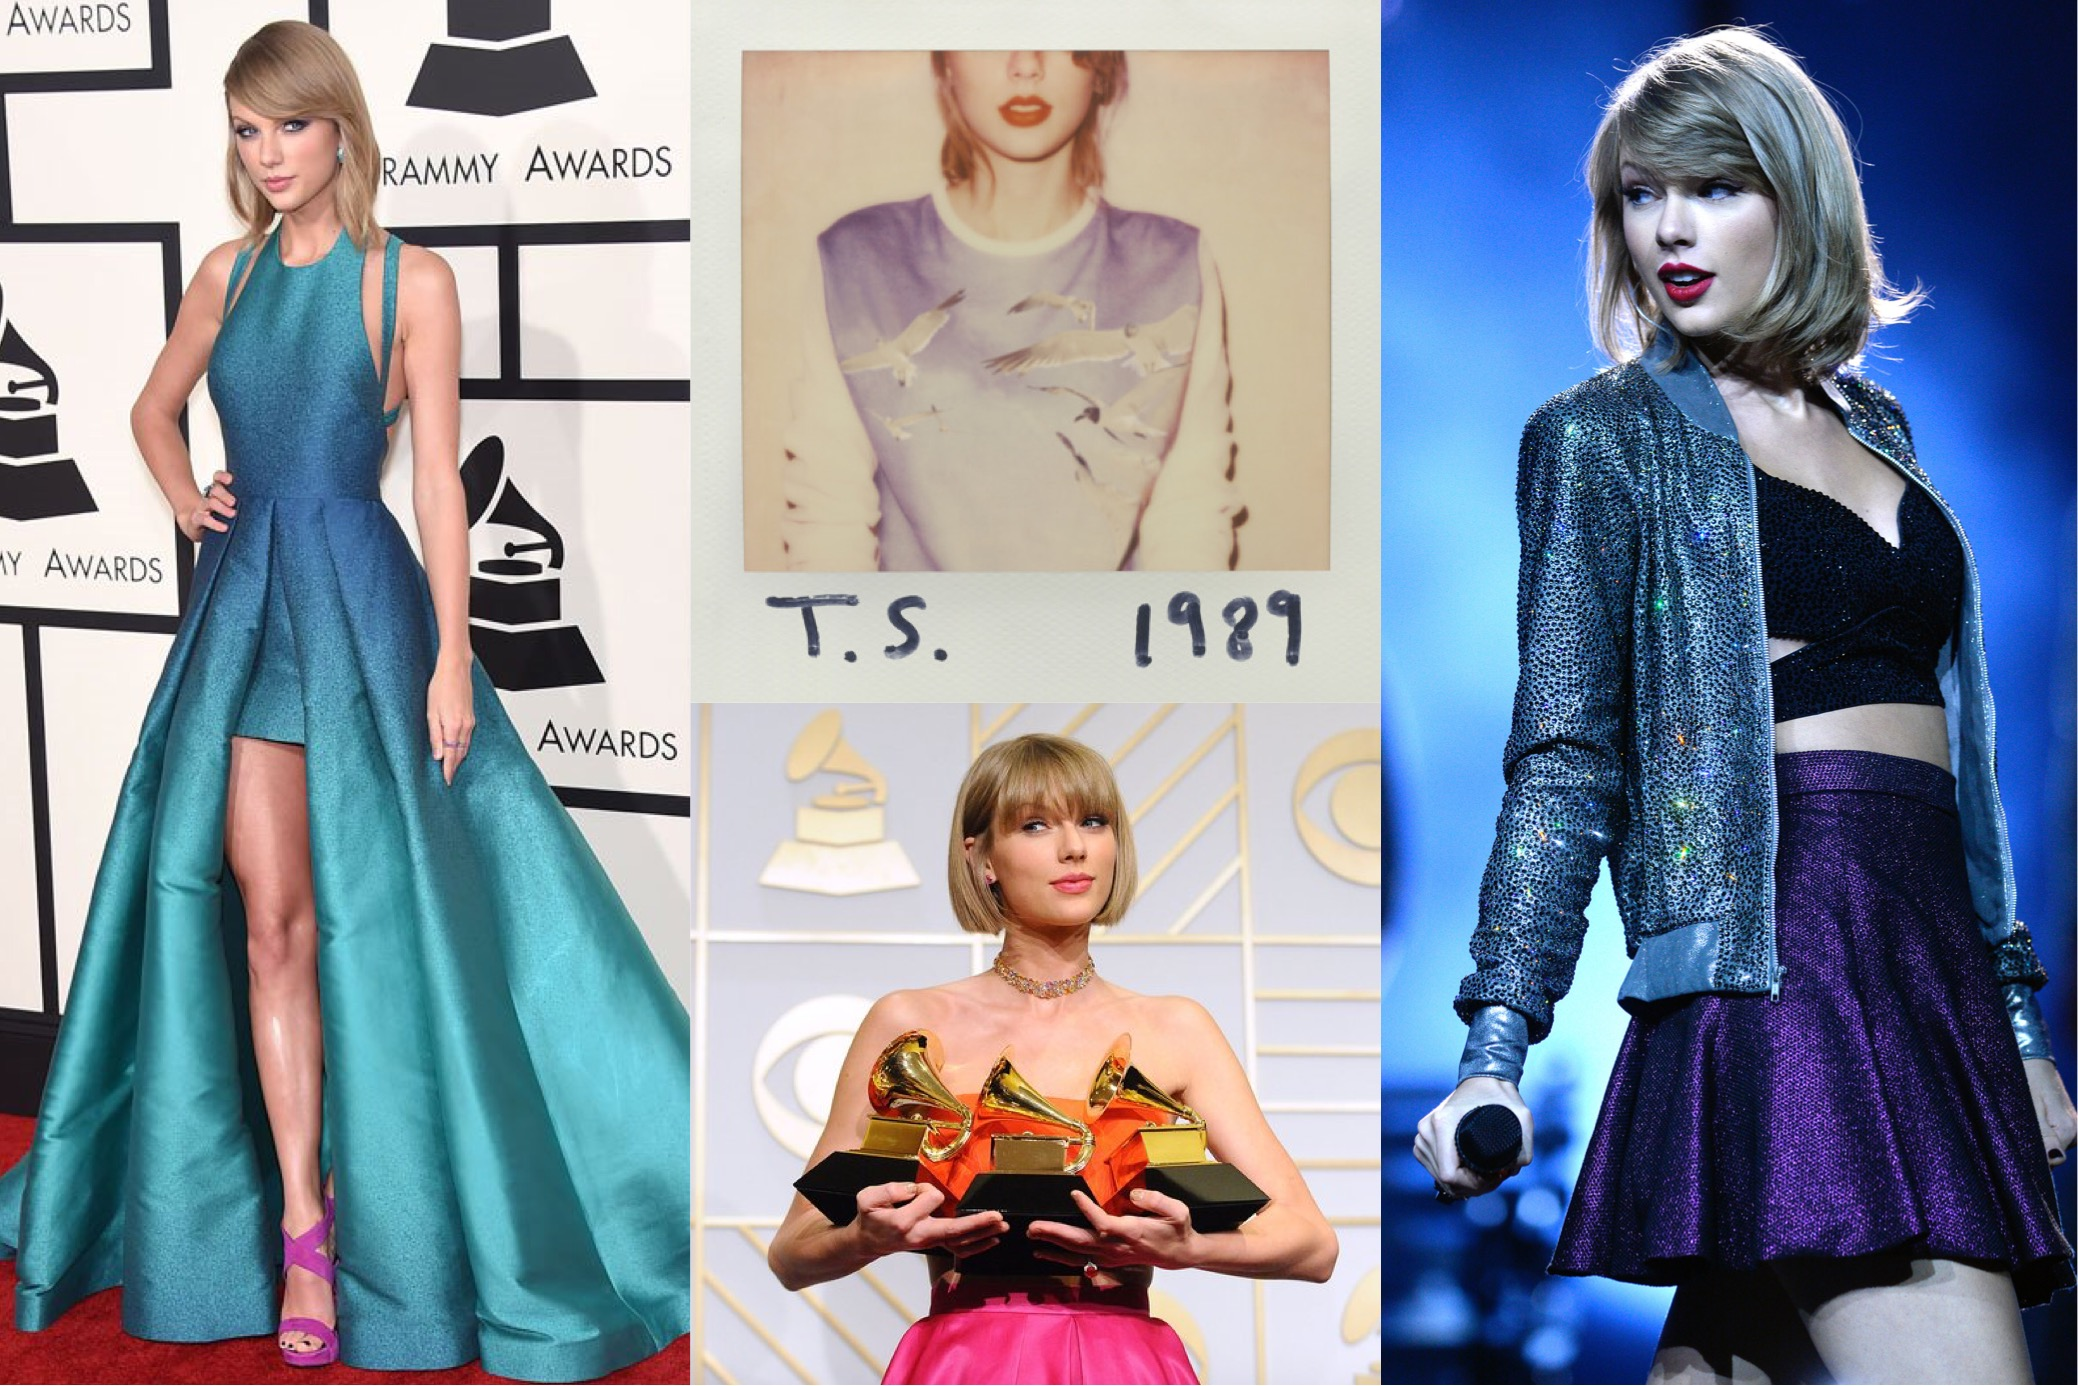 Taylor Swift at the 2015 Grammy Awards in Elie Saab,  1989  (2014) album cover, at the 2016 Grammy Awards in Atelier Versace, 2015 1989 World Tour performance in Cologne, Germany   (Photo: INF Photo.com, Vulture, Jason LaVeris/Getty Images. Sascha Steinbach/Getty Images for TAS )